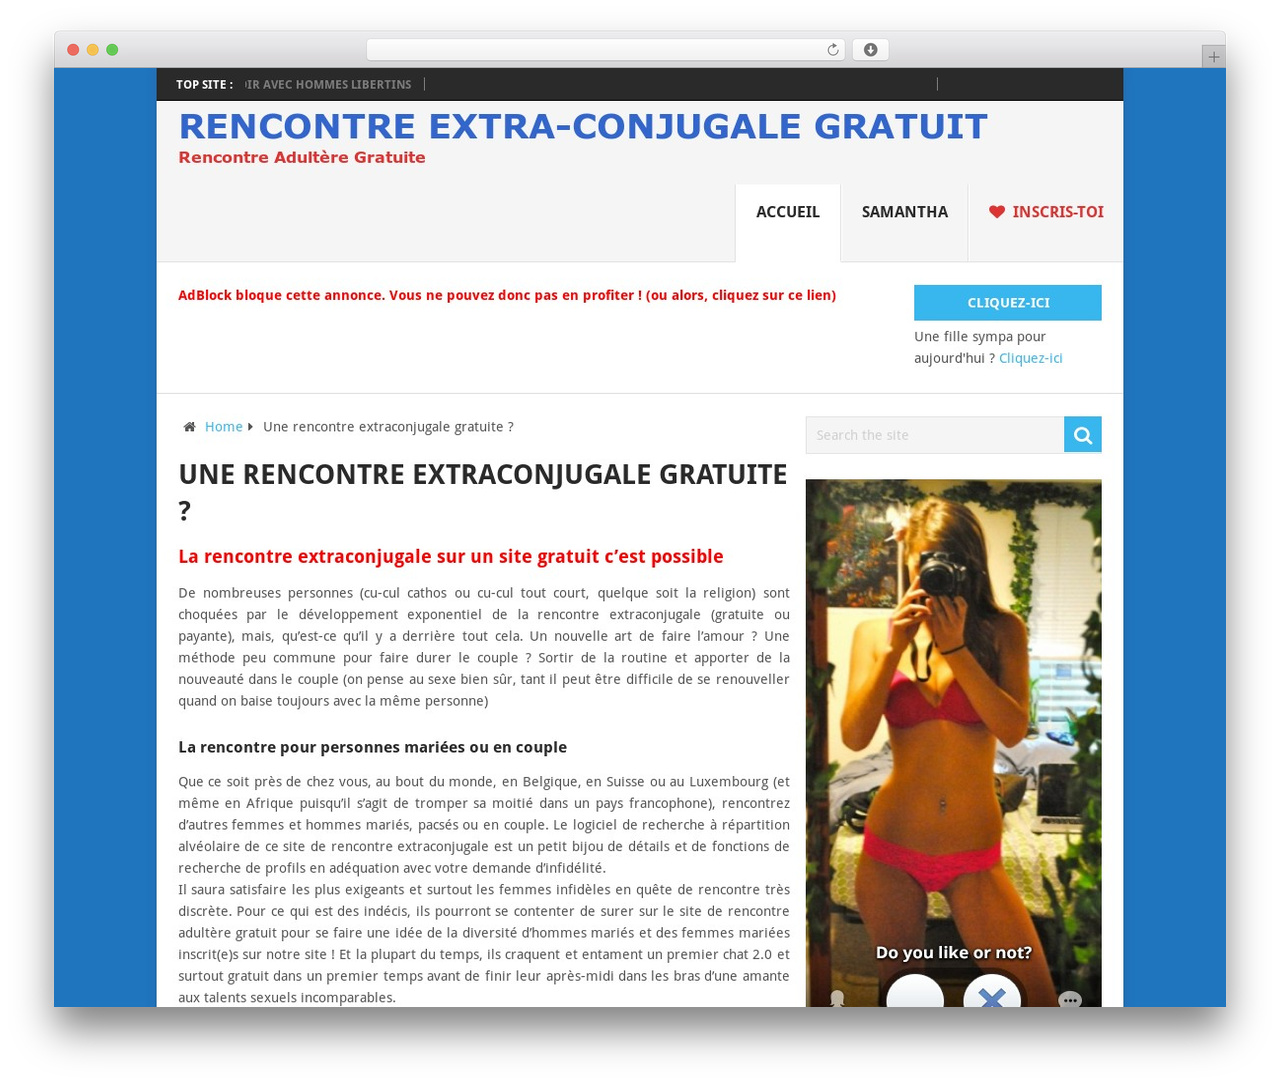 Rencontre extraconjuguale